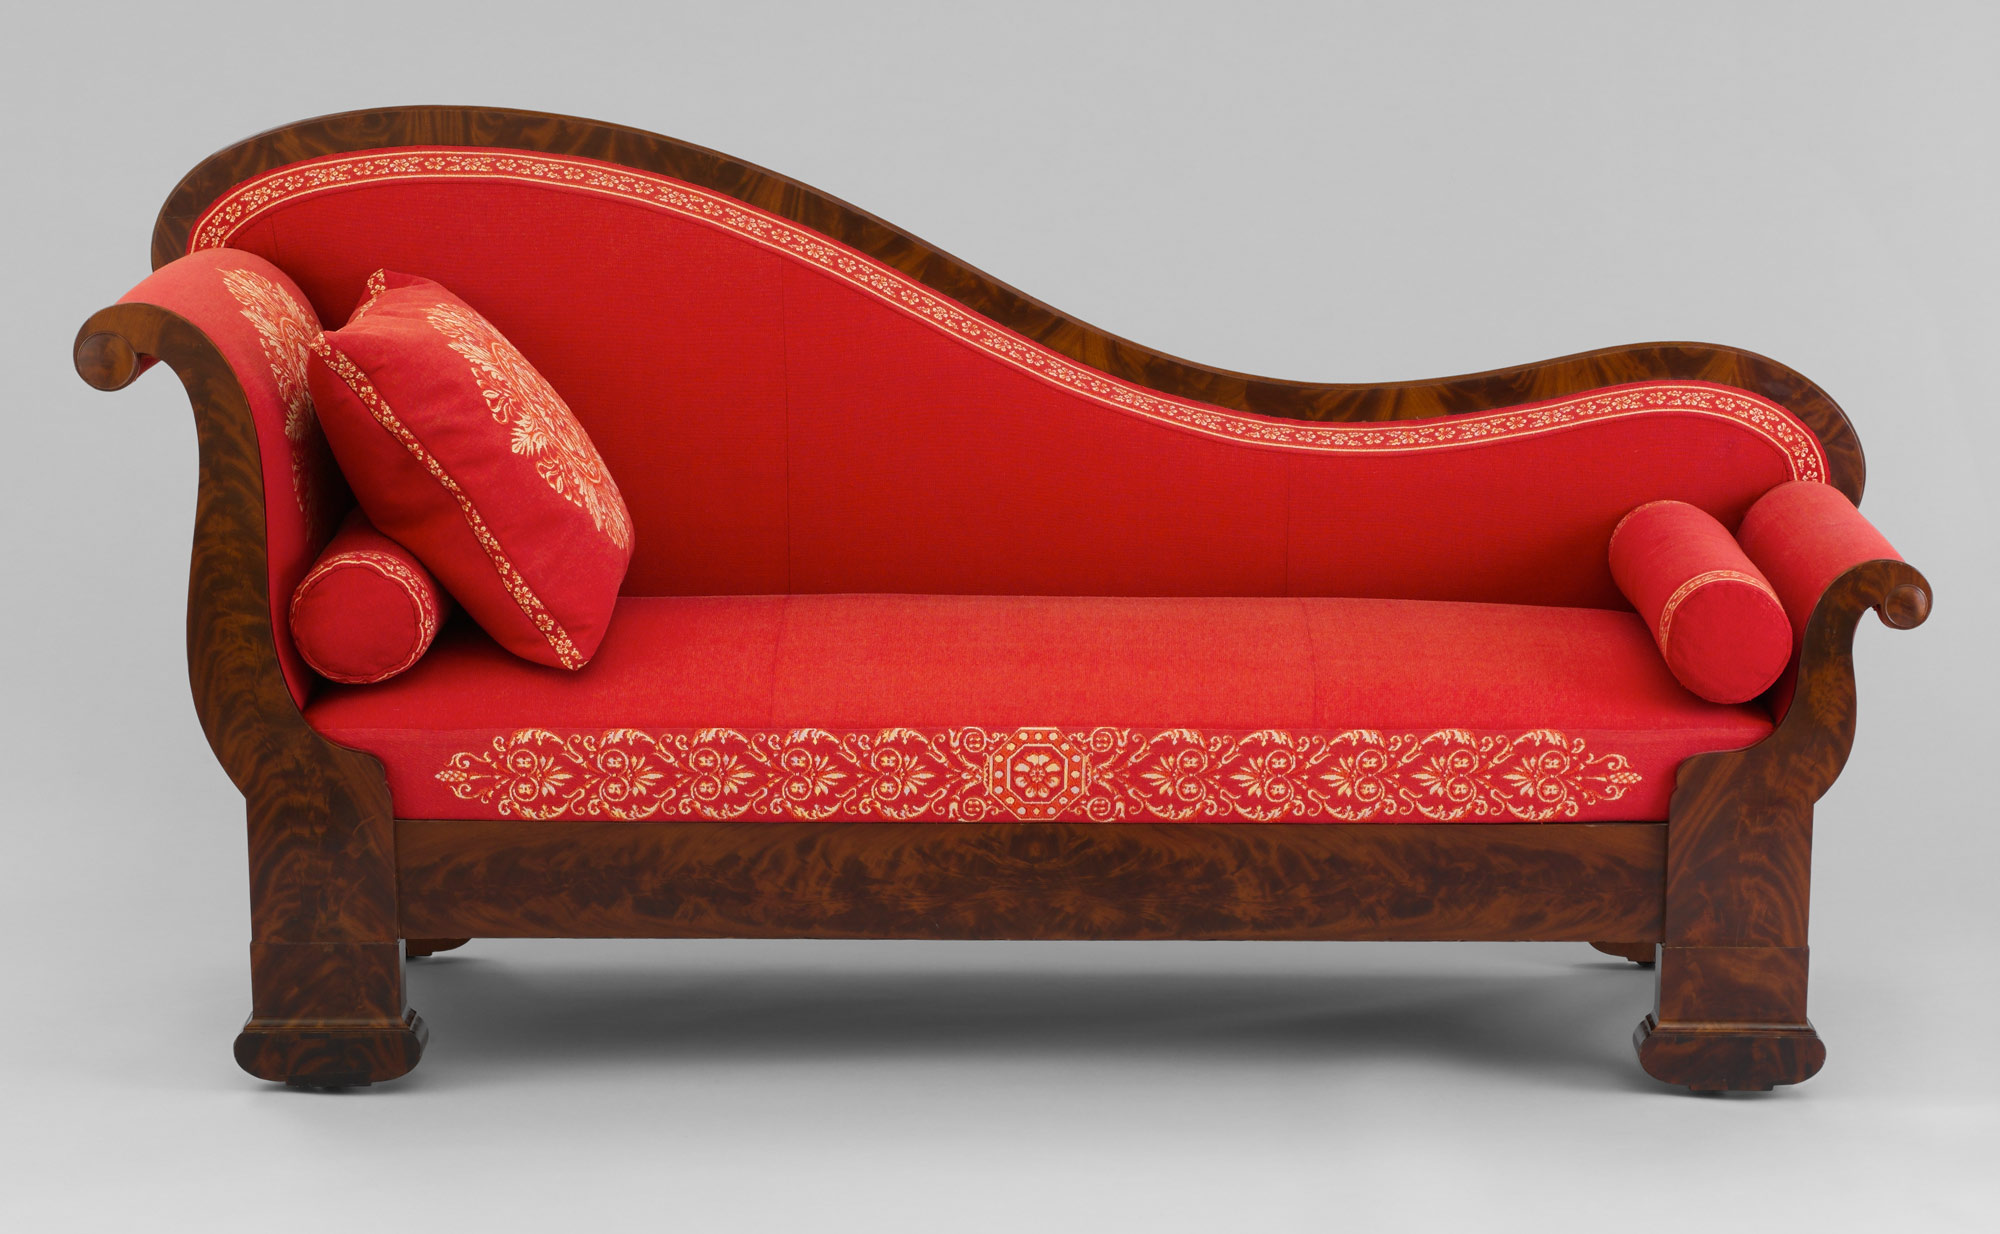 Couch Attributed To The Workshop Of Duncan Phyfe 66